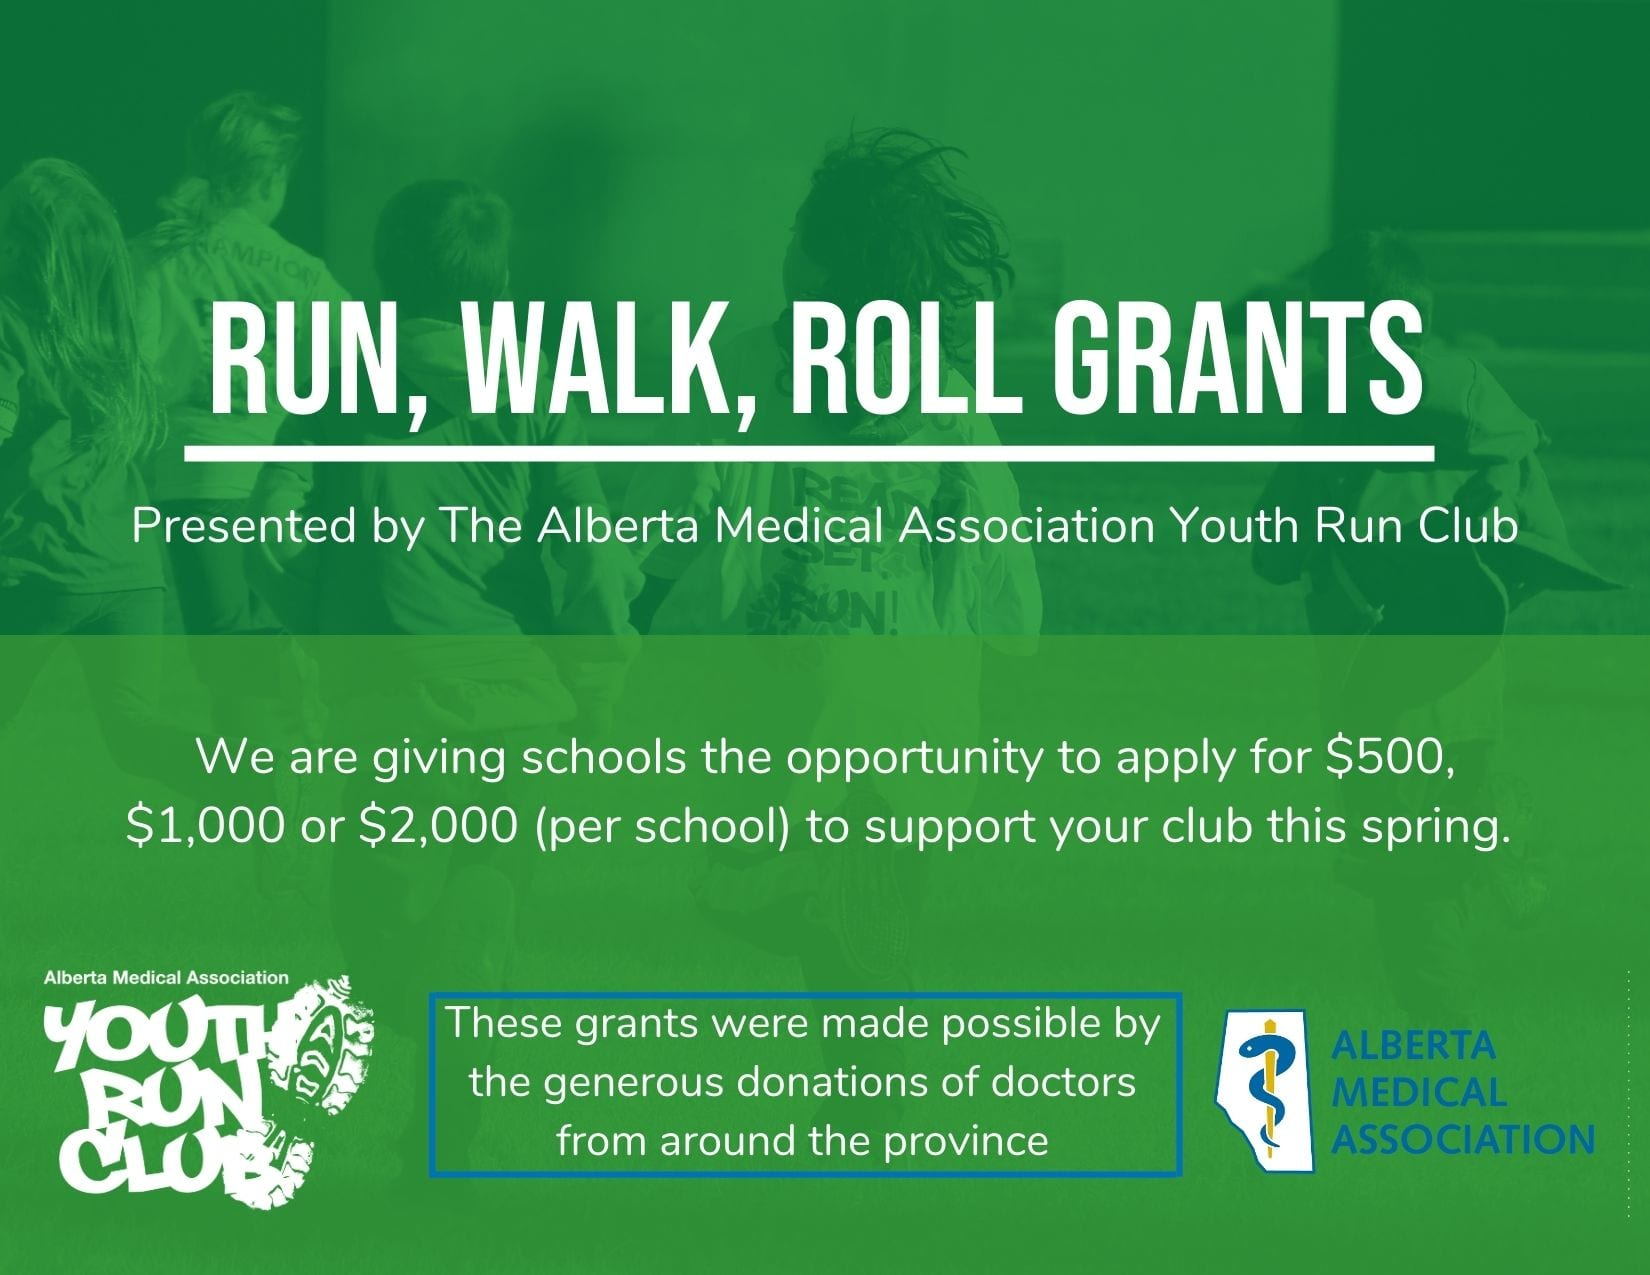 """Green graphic with text: """"Run, Walk, Roll Grants/Presented by the Alberta Medical Association Youth Run Club/We are giving schools the opportunity to apply for $500,/$1,000 or $2,000 (per school) to support your club this spring./These grants were made possible by the generous donations of doctors from around the province"""""""